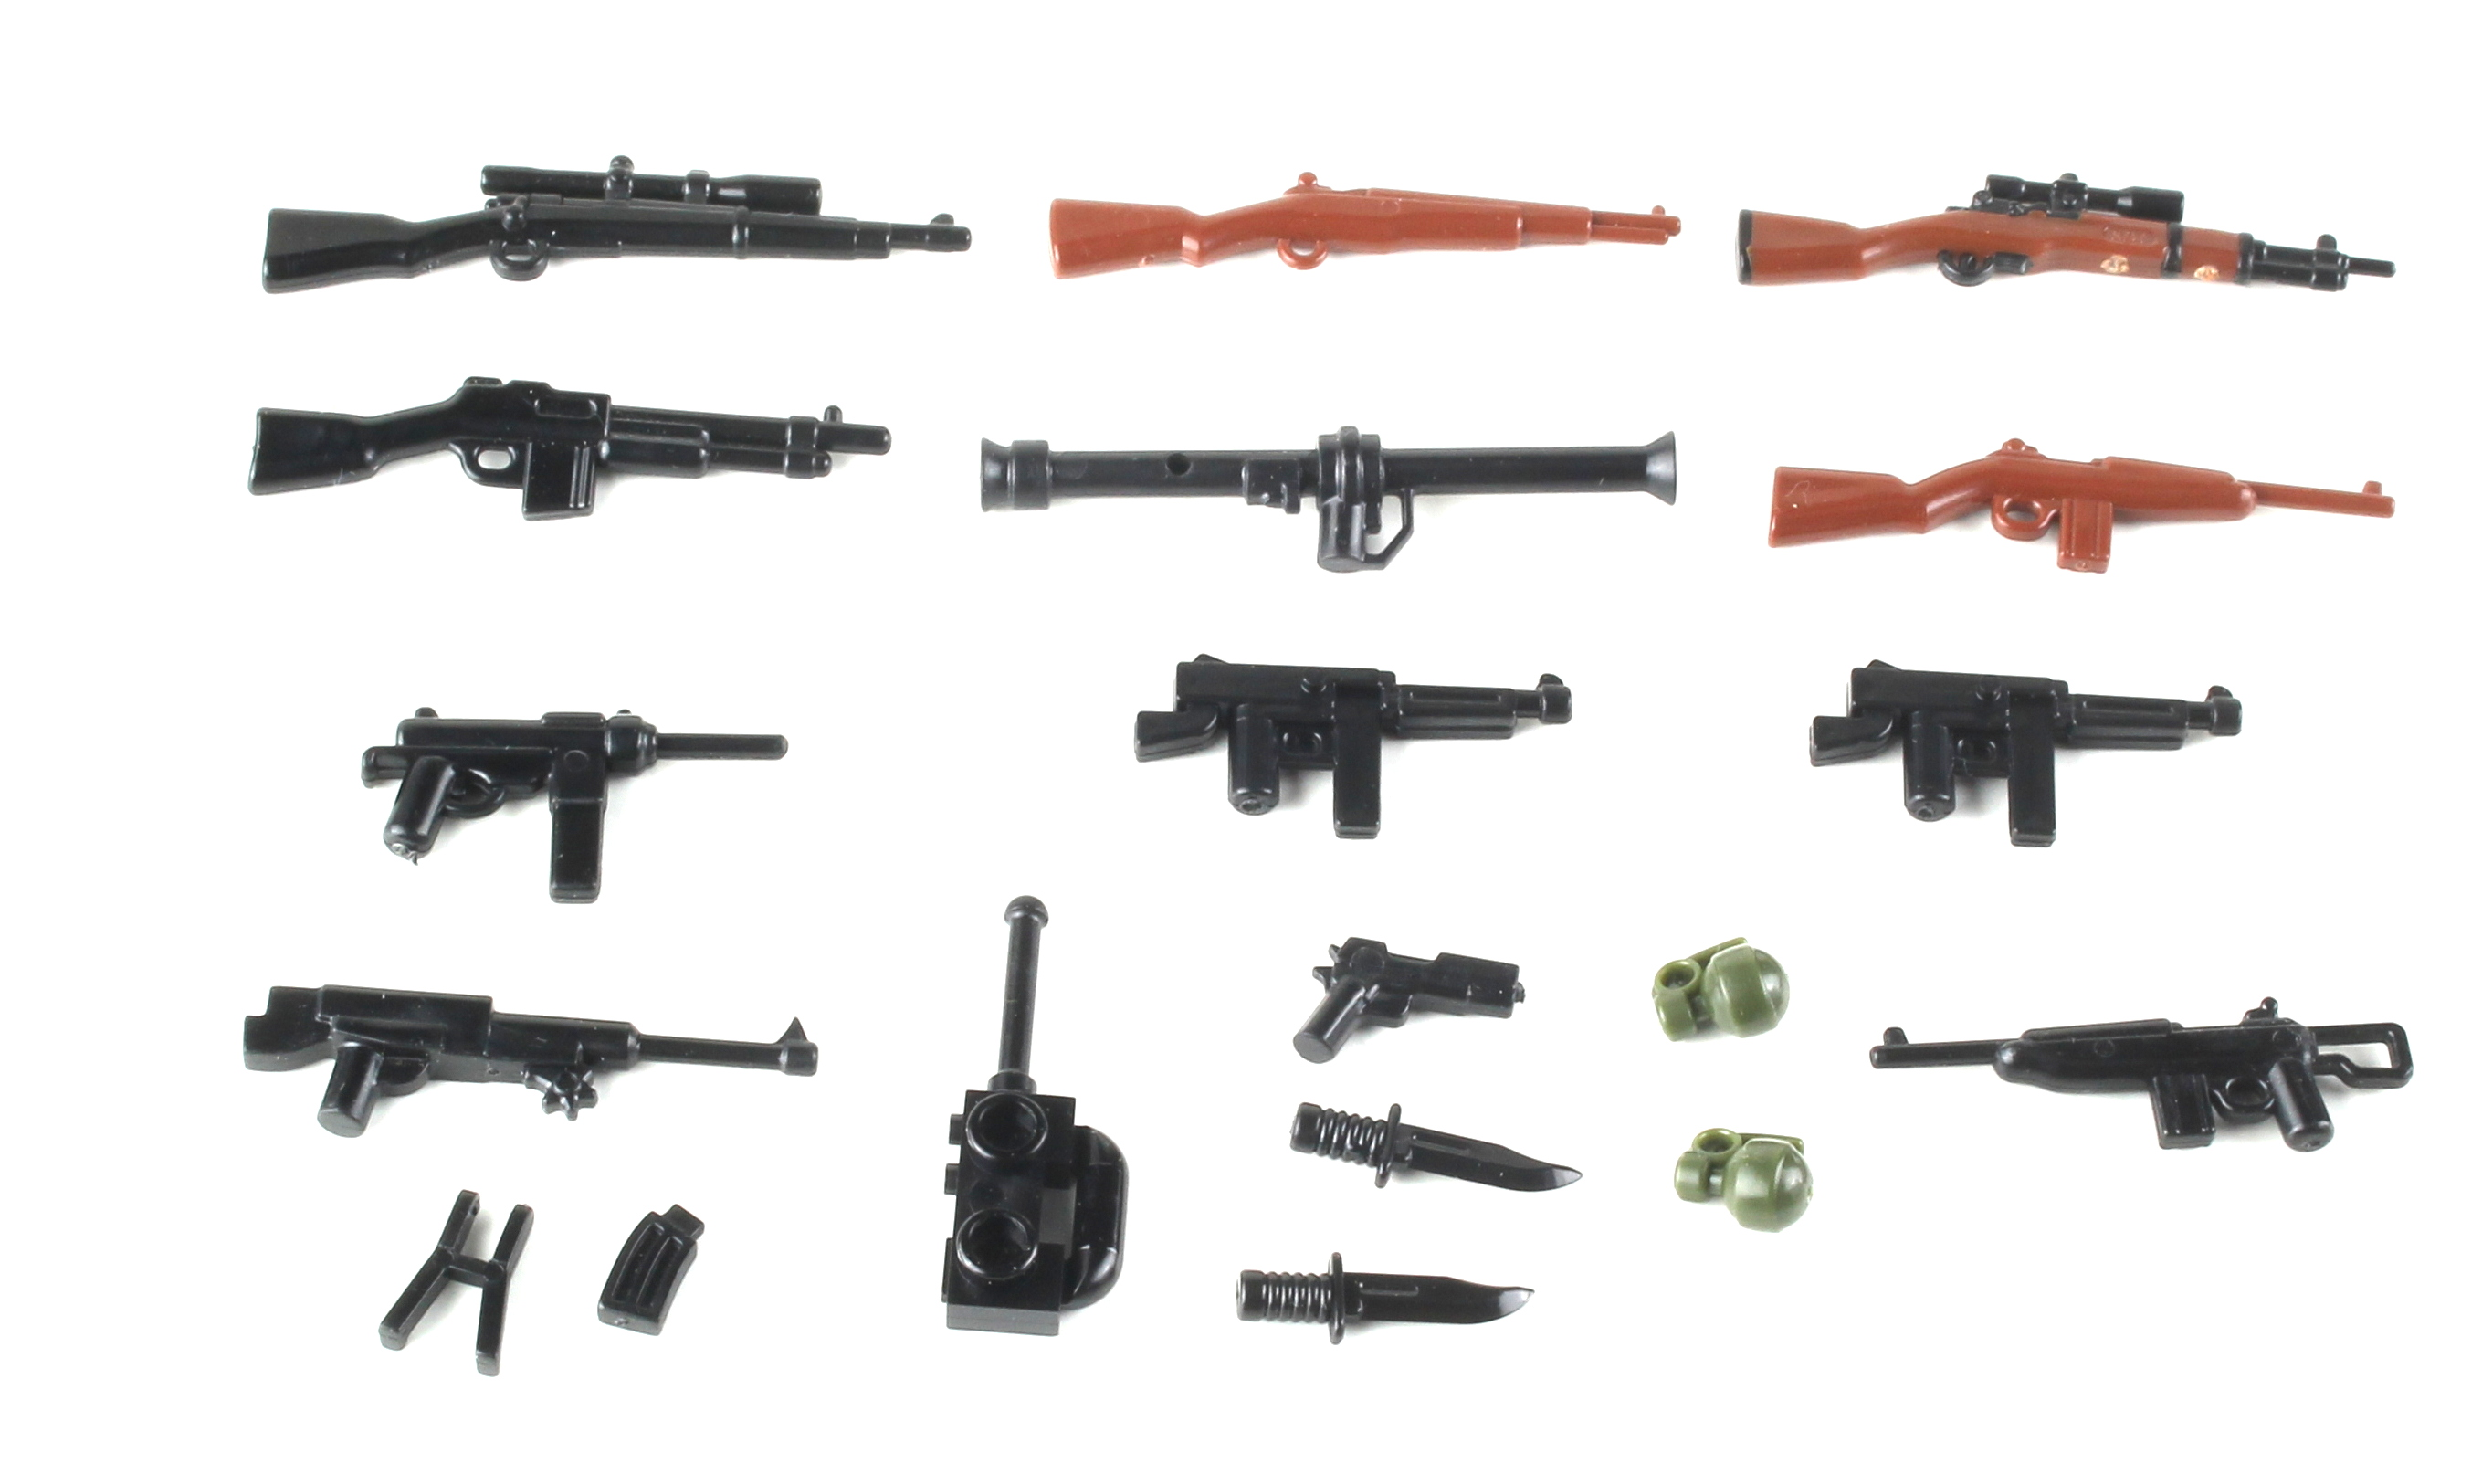 Shotgun Pack Army Weapons Pack 12 gauge compatible w//toy brick minifigures P13